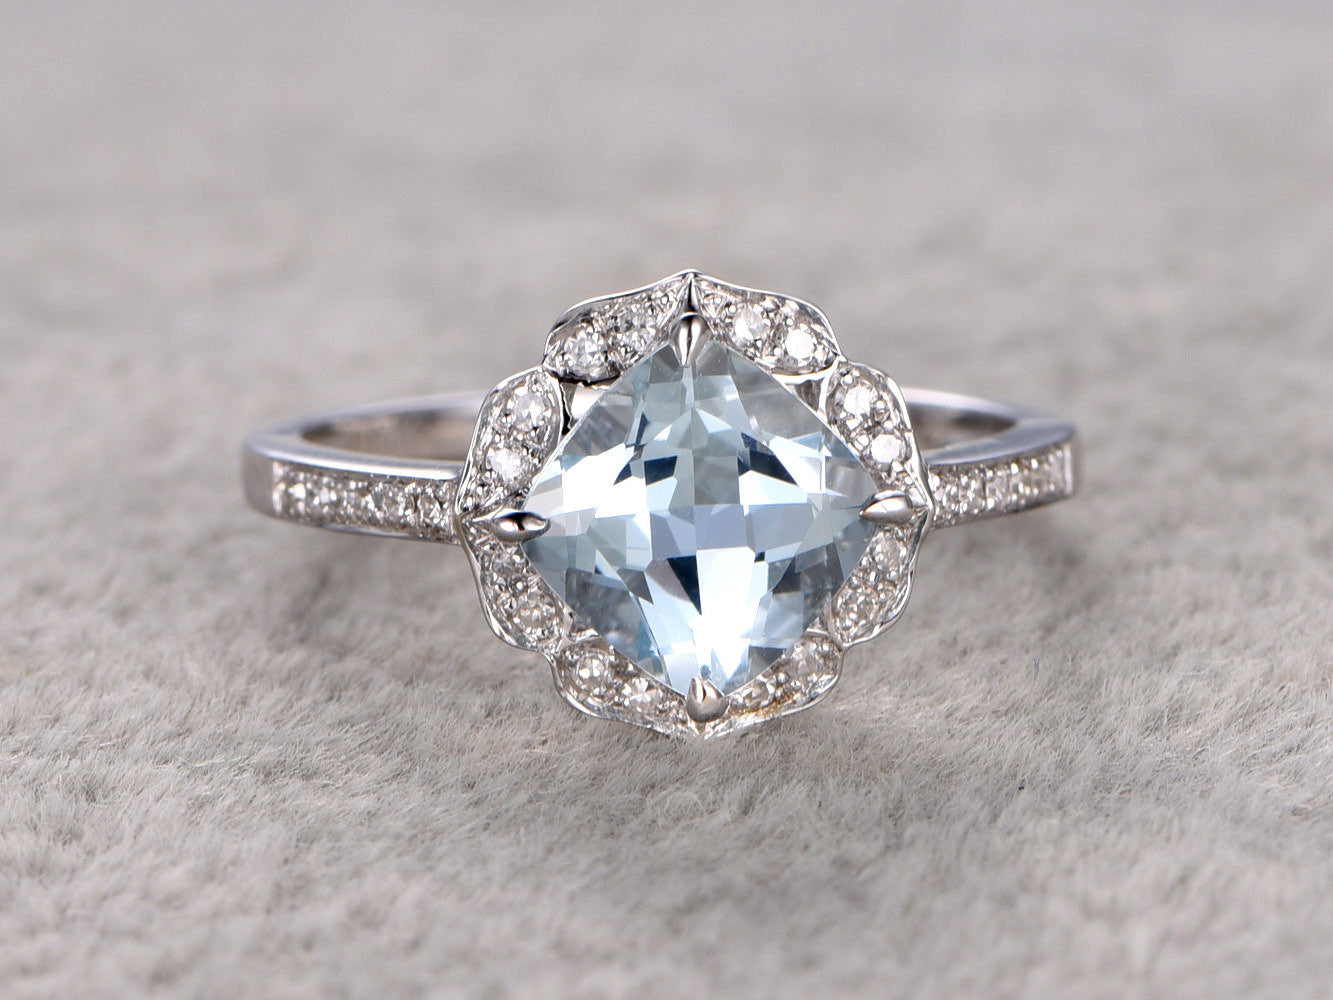 7mm Cushion Aquamarine Engagement ring White gold,Diamond wedding band,14k,Gemstone Promise Ring,Bridal Ring,Retro Vintage